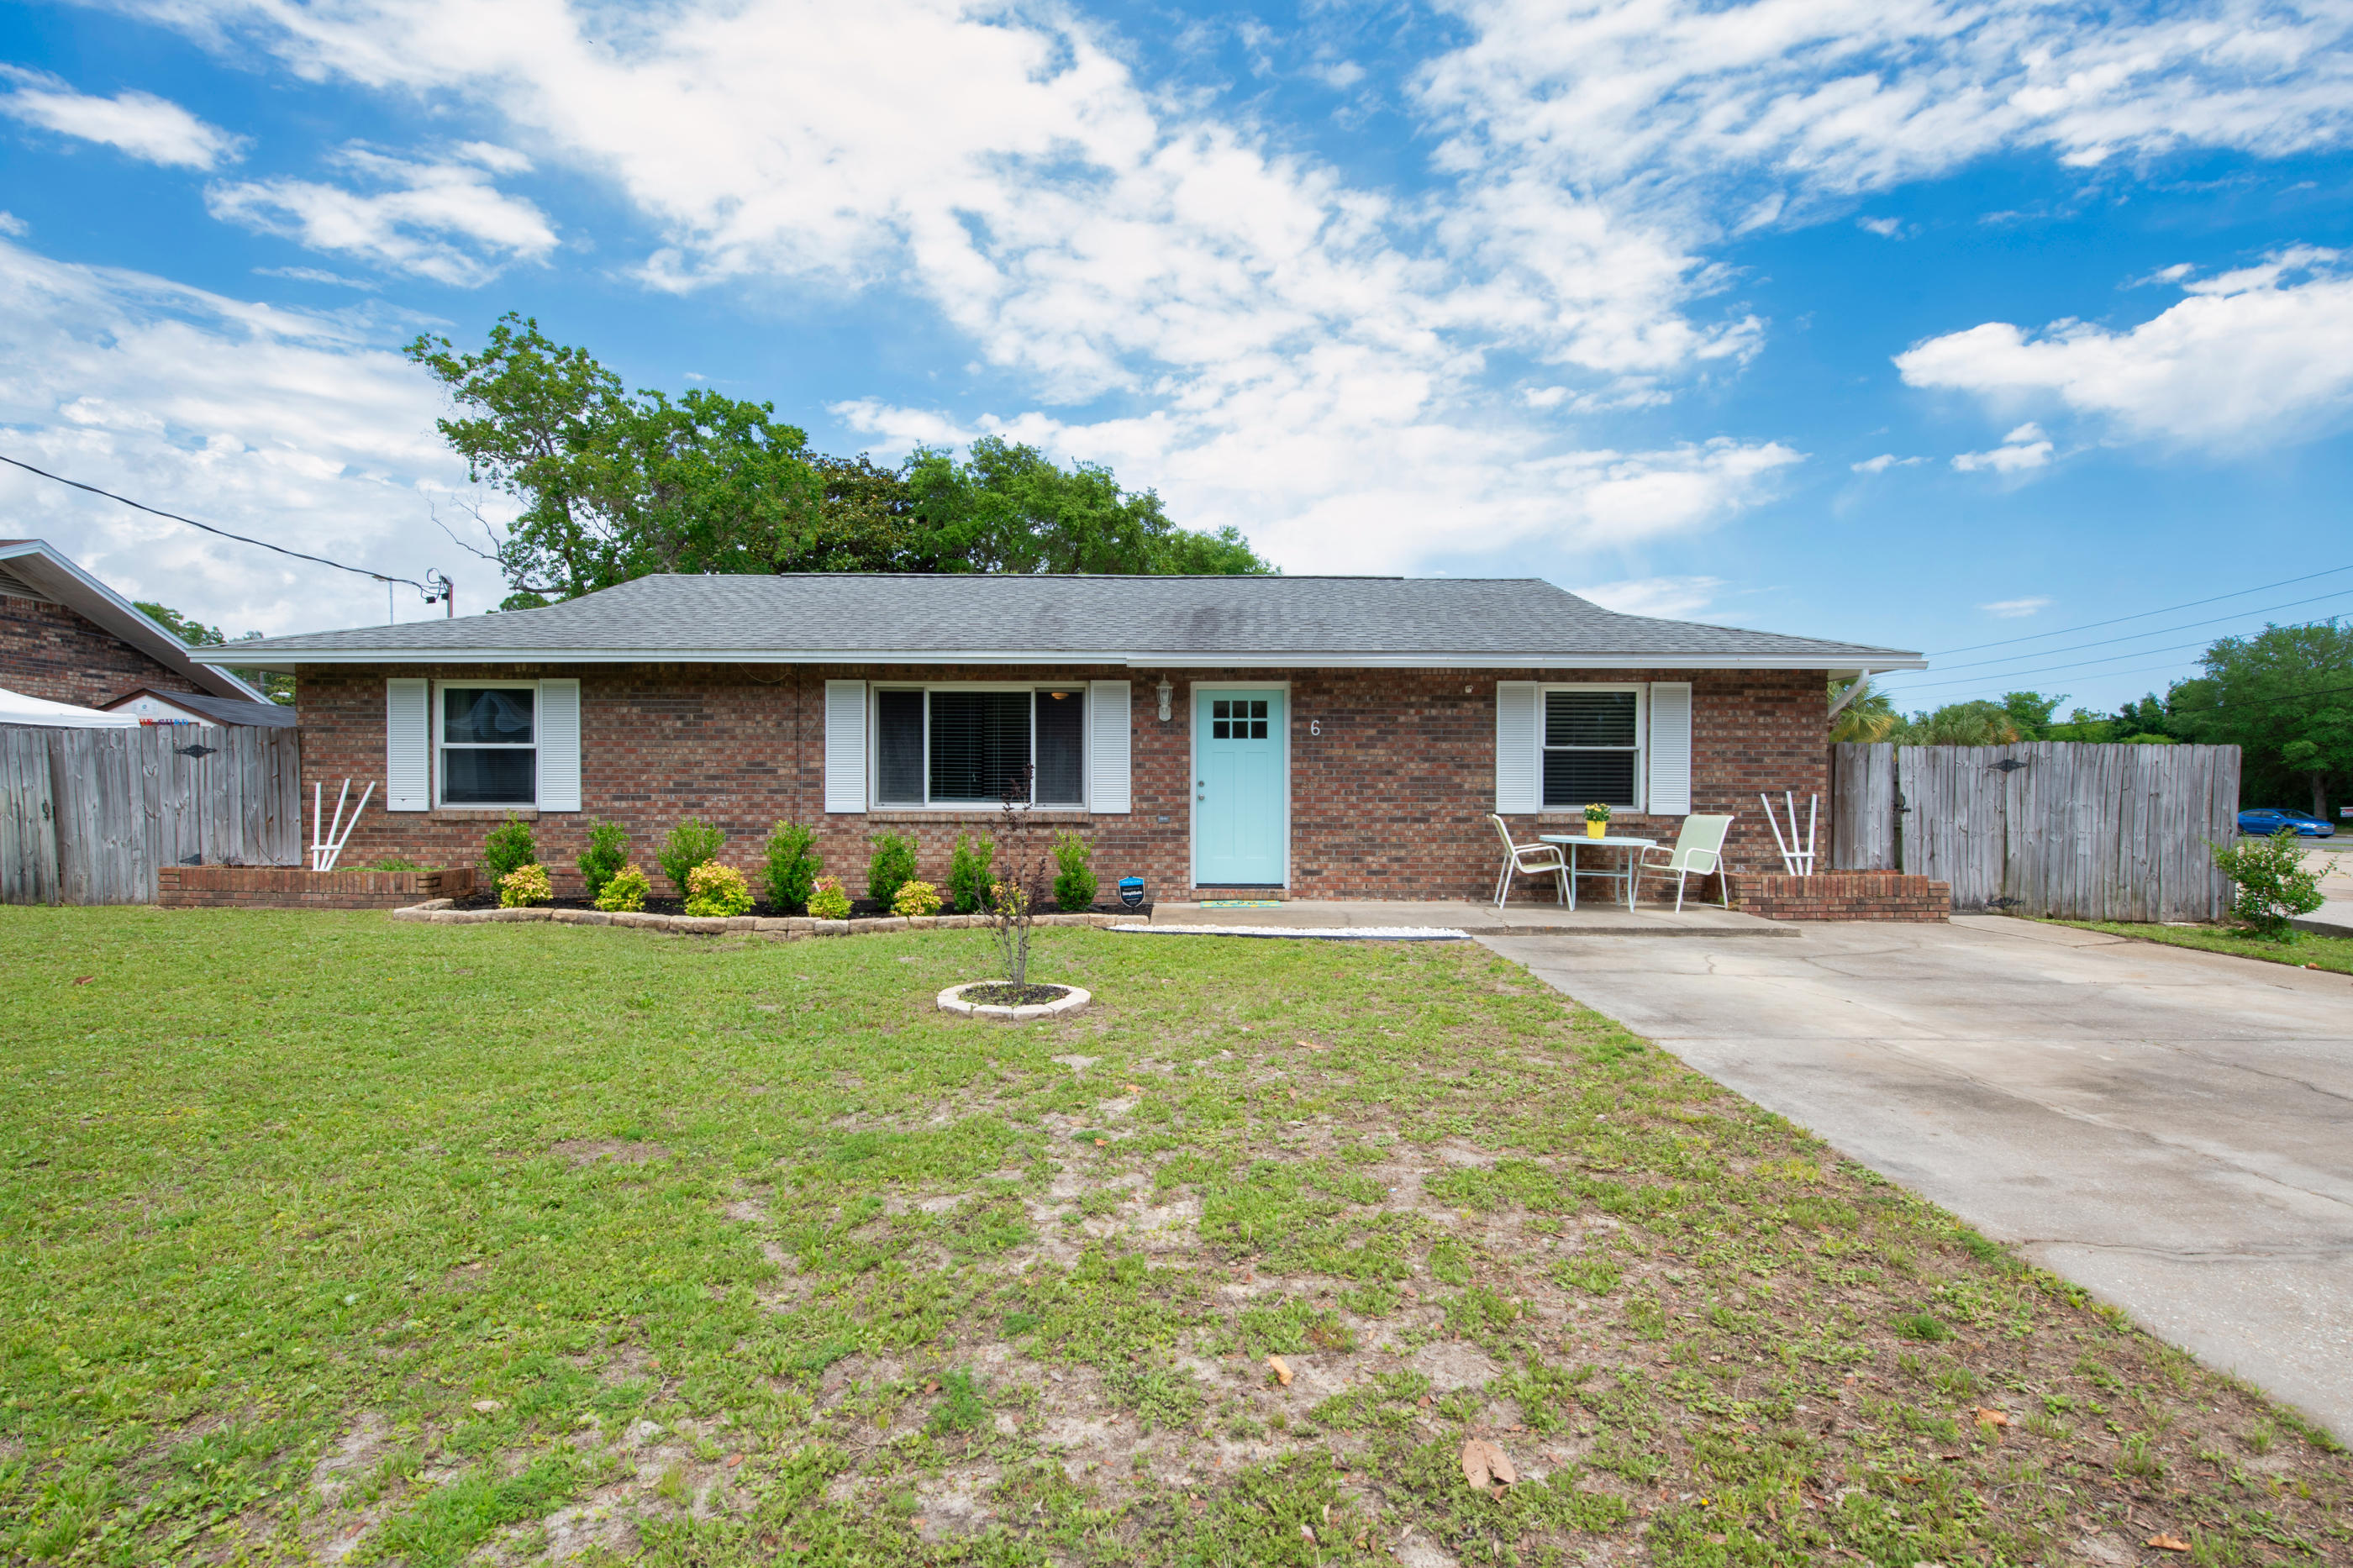 Photo of home for sale at 6 Overstreet, Mary Esther FL